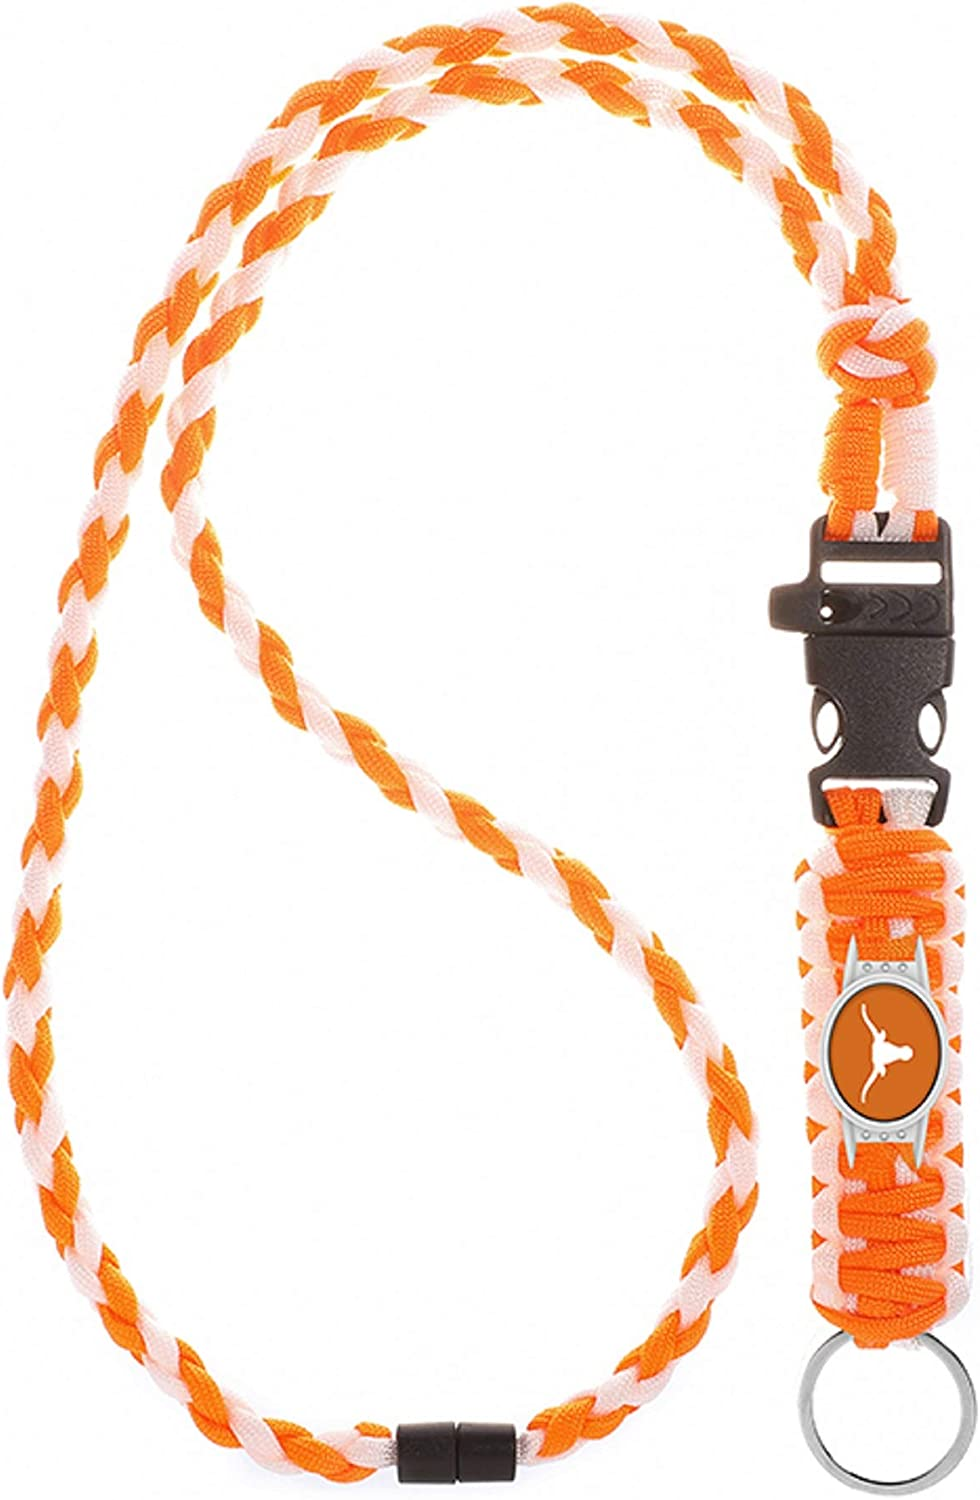 Neck Clasp Swamp Fox New York Giants Paracord Lanyard with Team Charm and Keychain Release